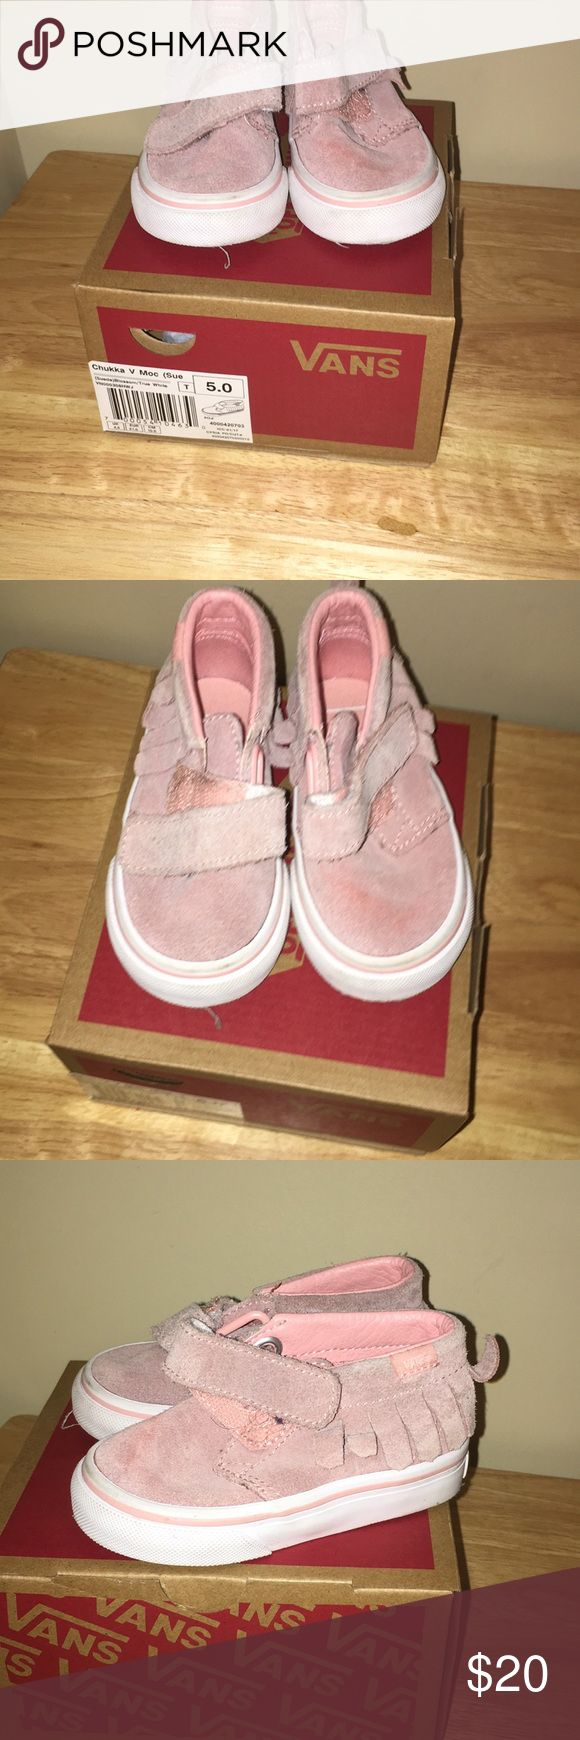 PRE OWNED TODDLER GIRLS FRINGES VANS PRE OWNED TODDLER GIRLS FRINGES VANS ... PET FREE SMOKE FREE HOME Vans Shoes Sneakers